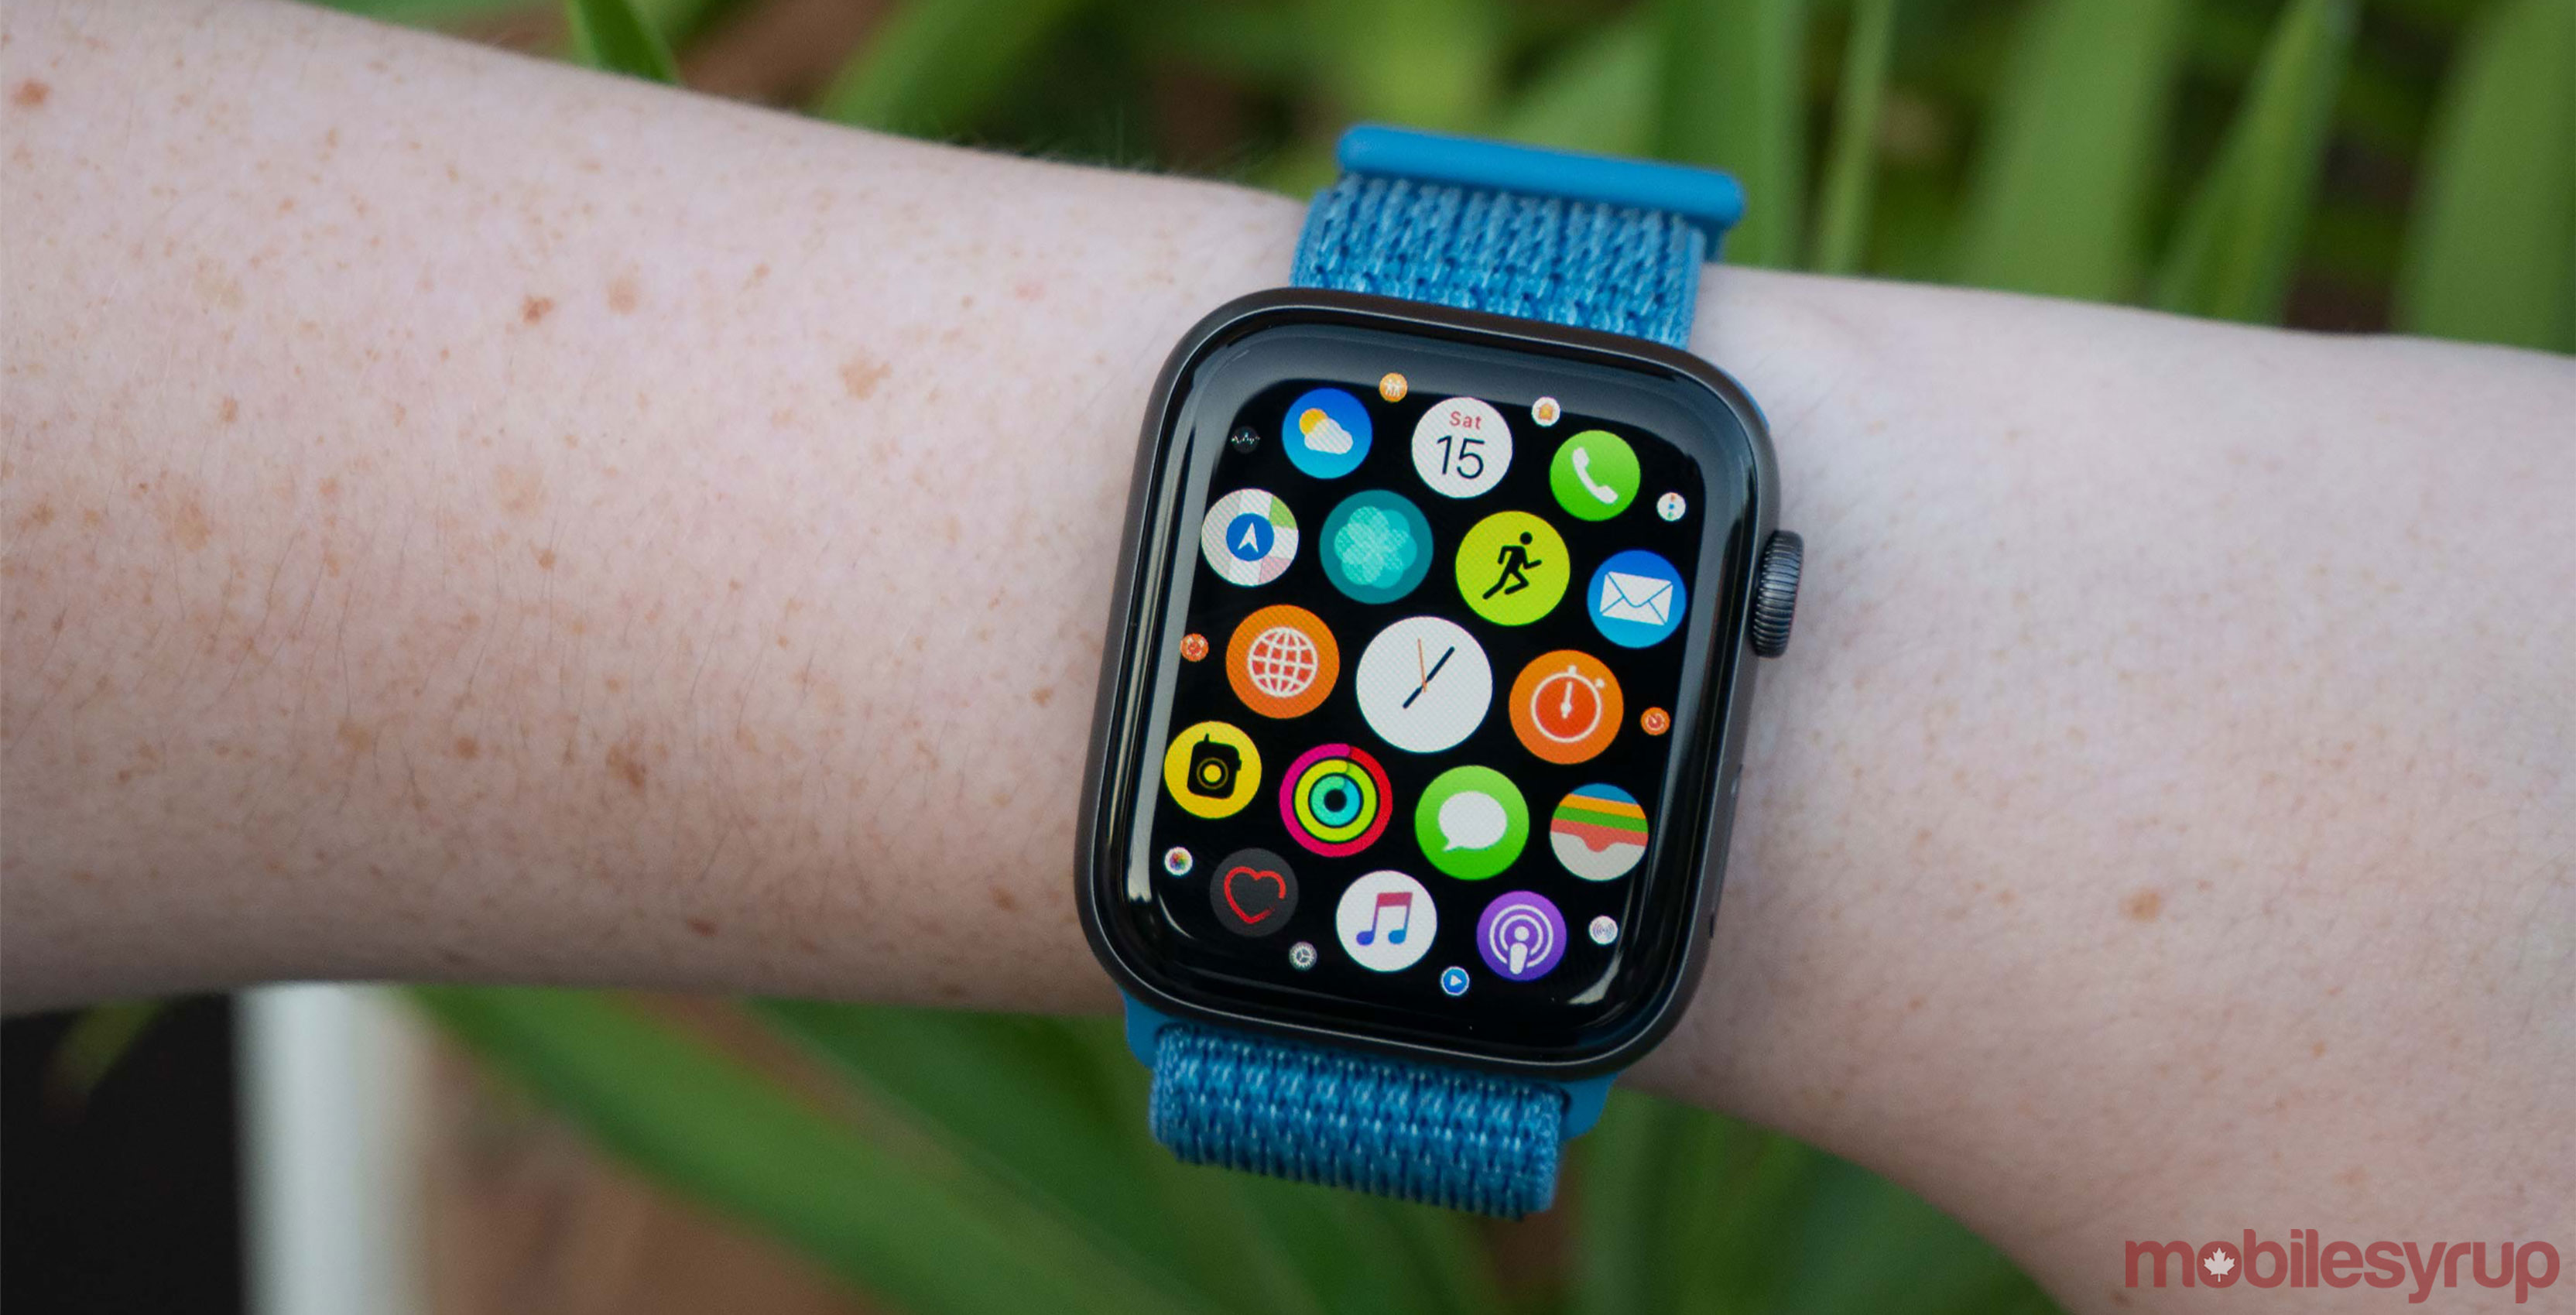 b4581c9e24c2 It looks like the Apple Watch is continuing to sell exceptionally well  despite a general sense of doom surrounding the smartwatch industry